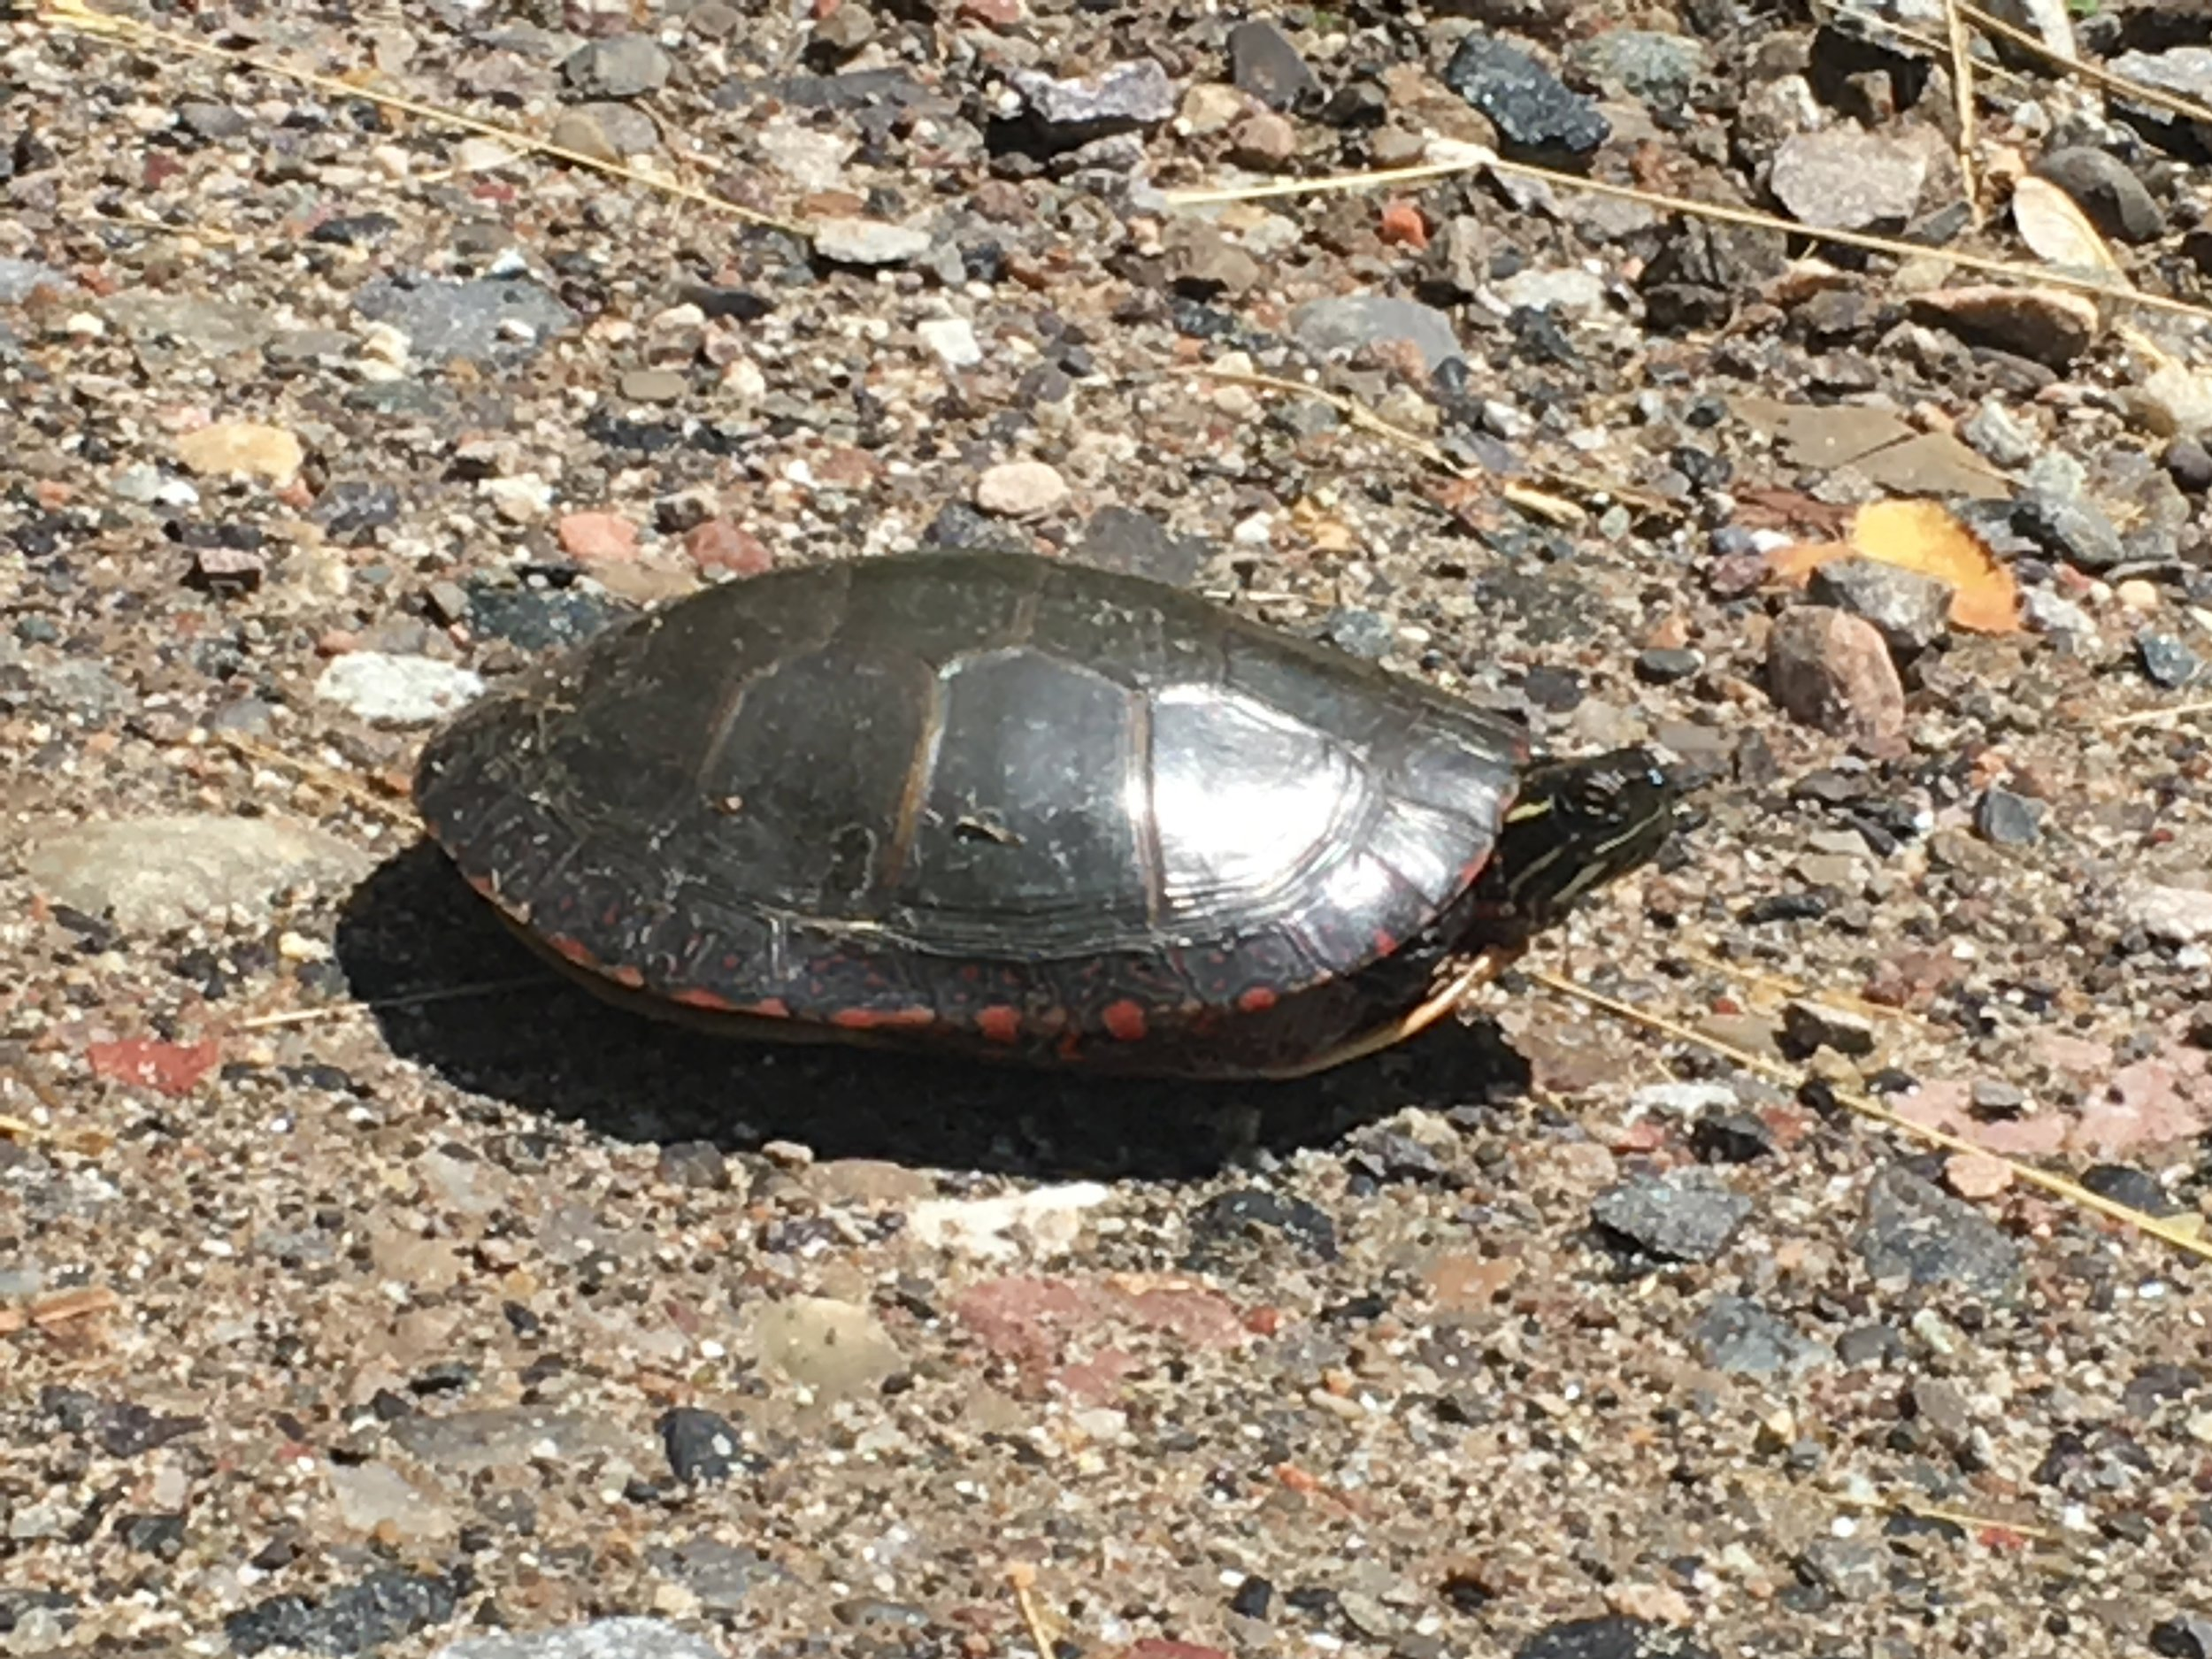 her shell is smooth and gently appliquéd with colors, a bit of a spit polish.